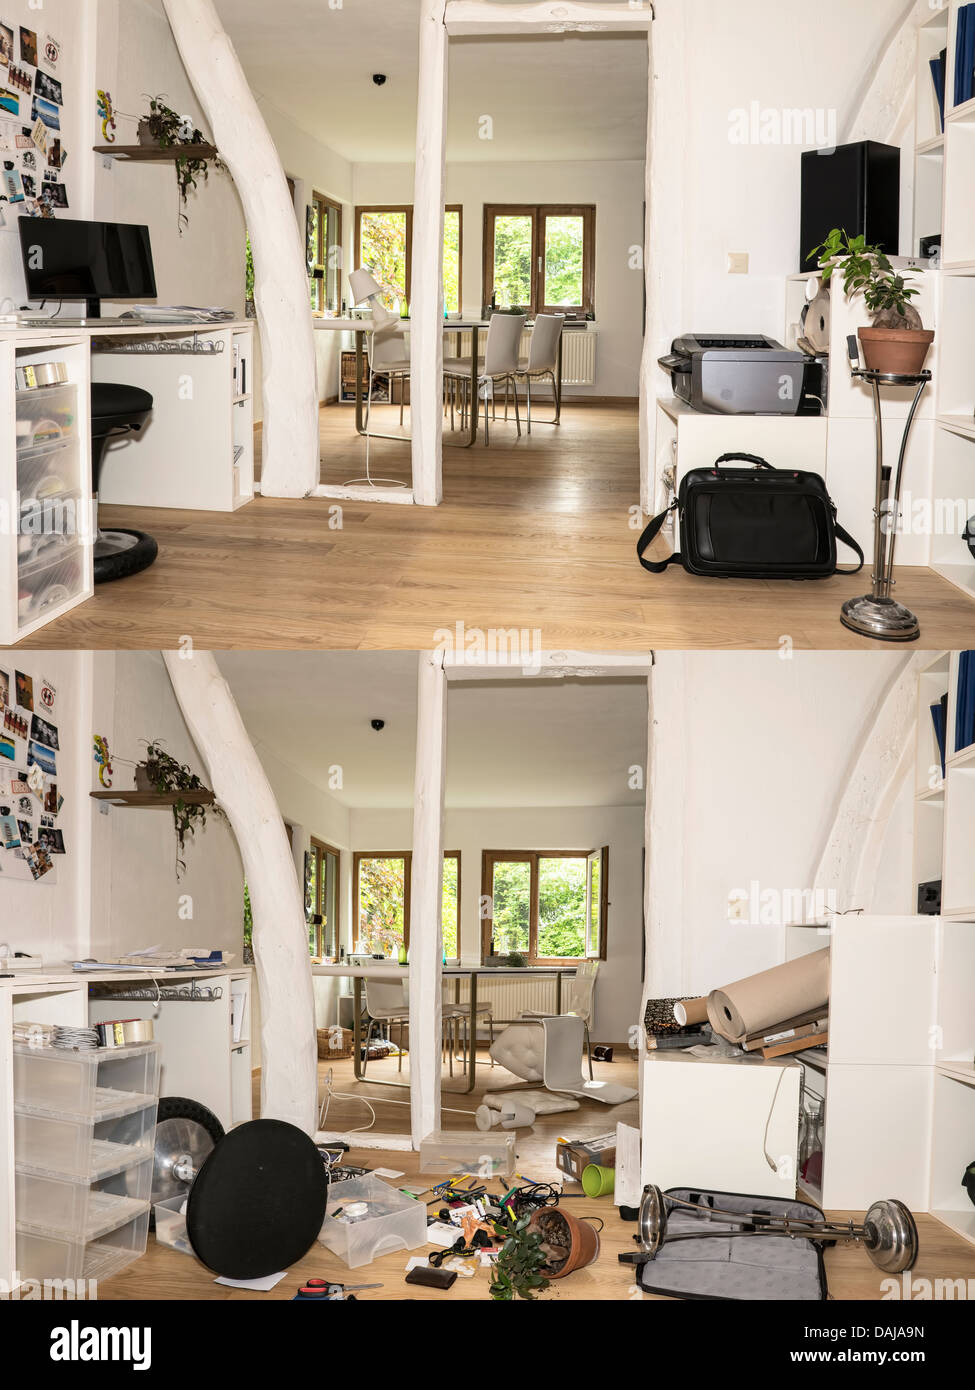 Germany North Rhine Westphalia Interior Of House Before And After Burglary